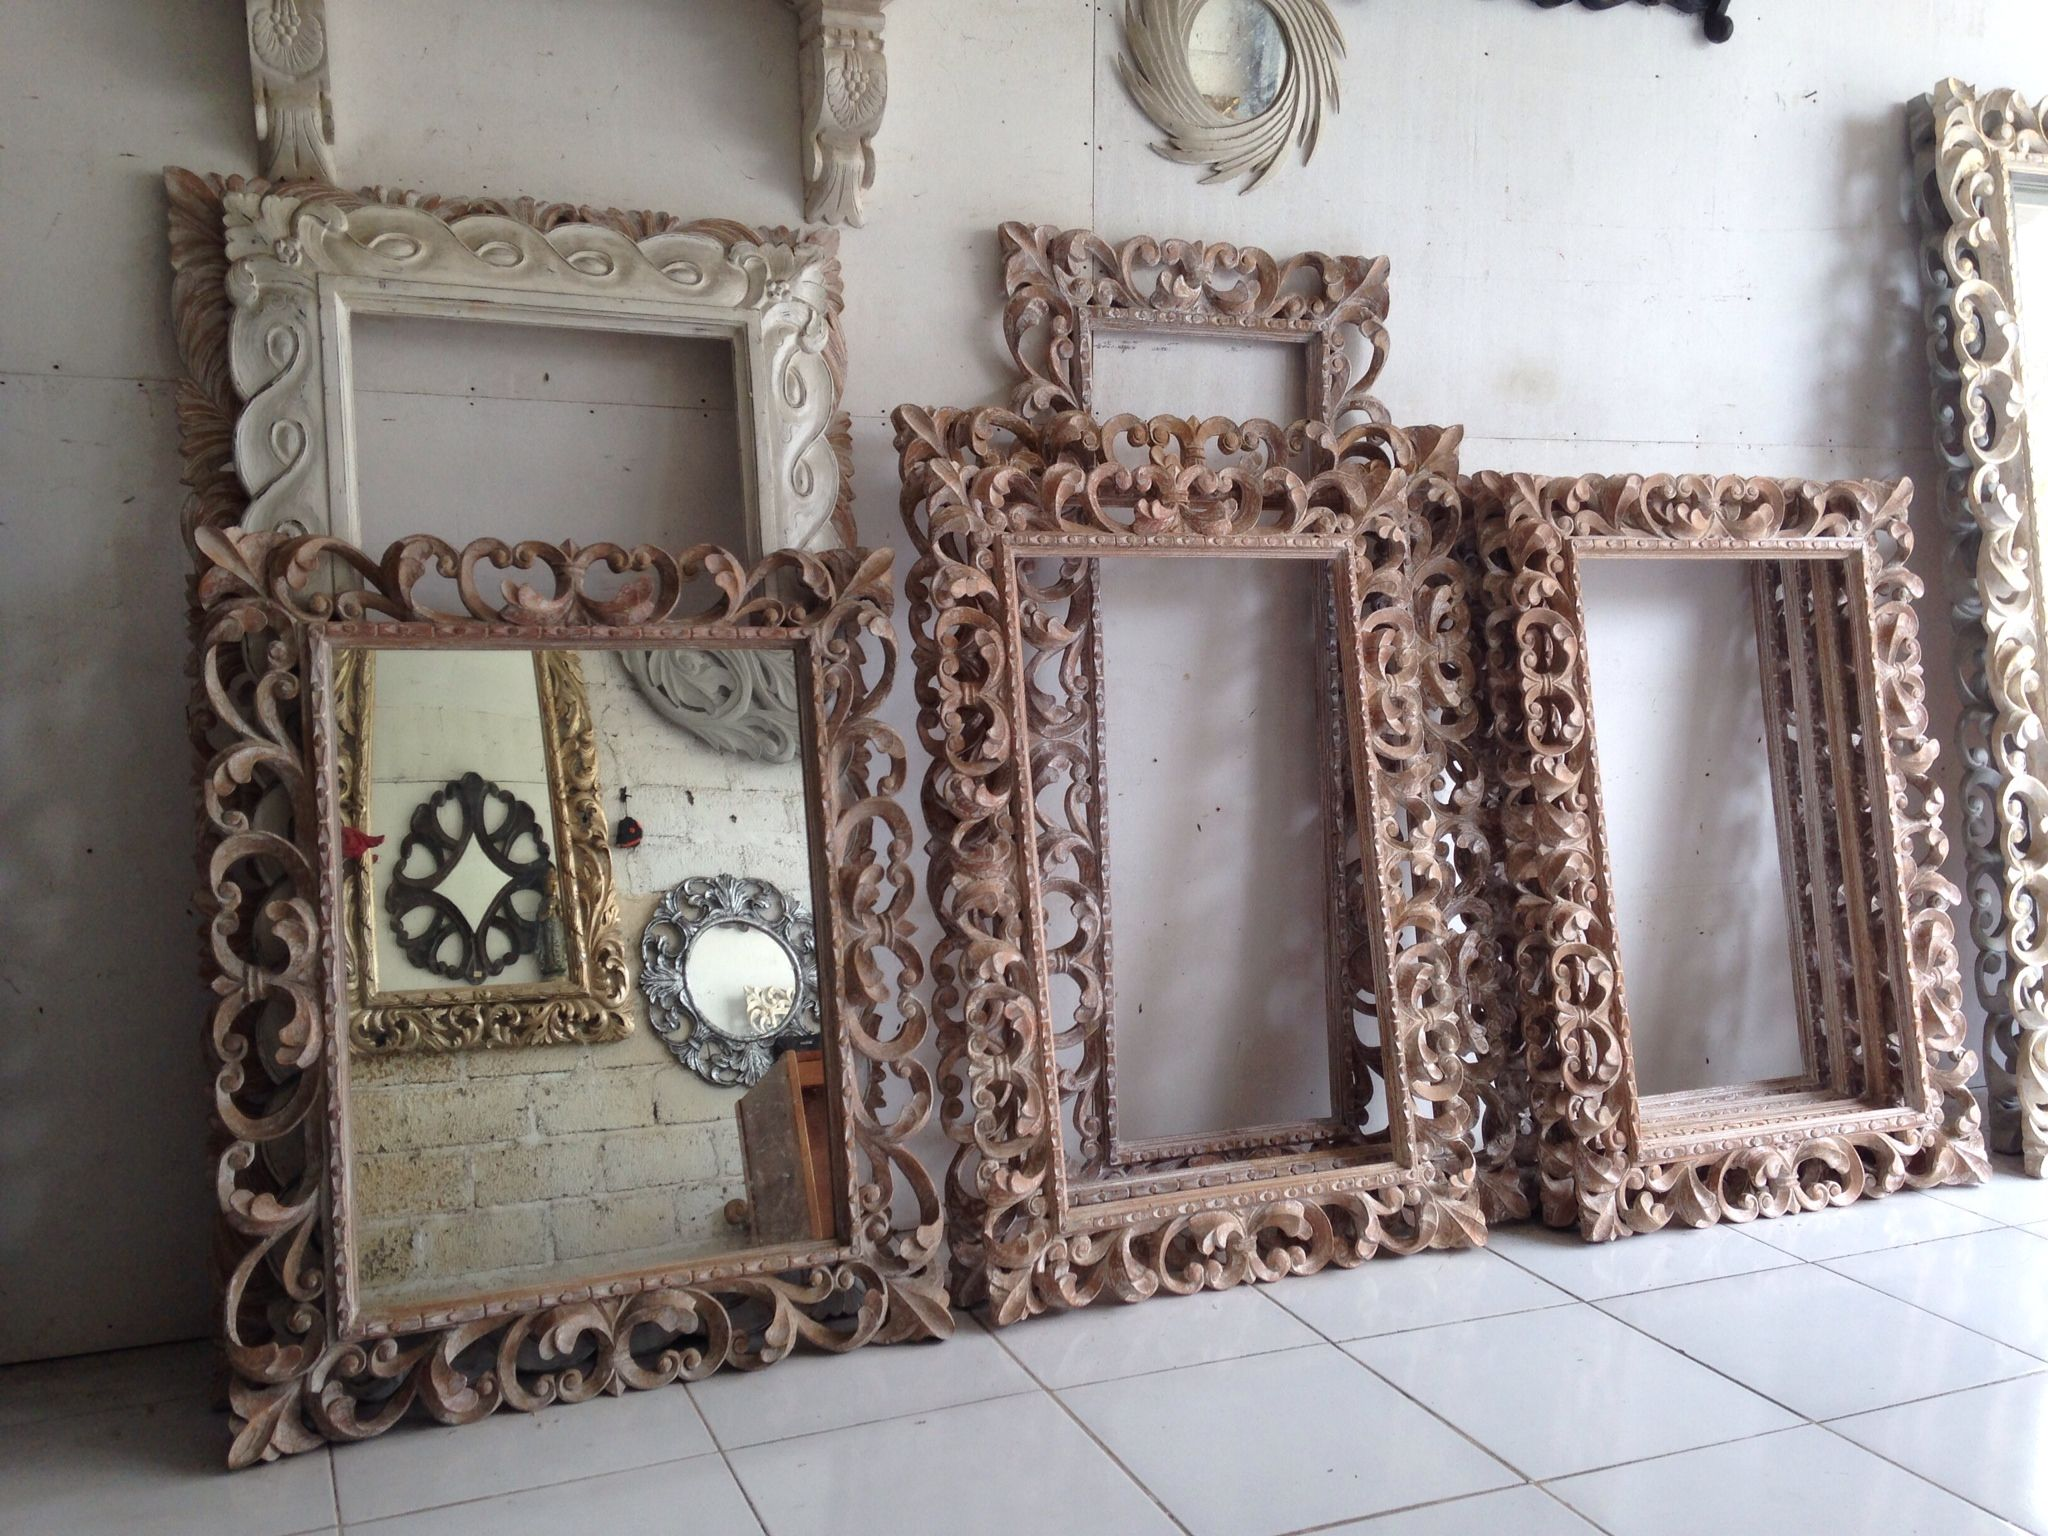 Pin By Kouboo On Global Product Trends Home Decor Balinese